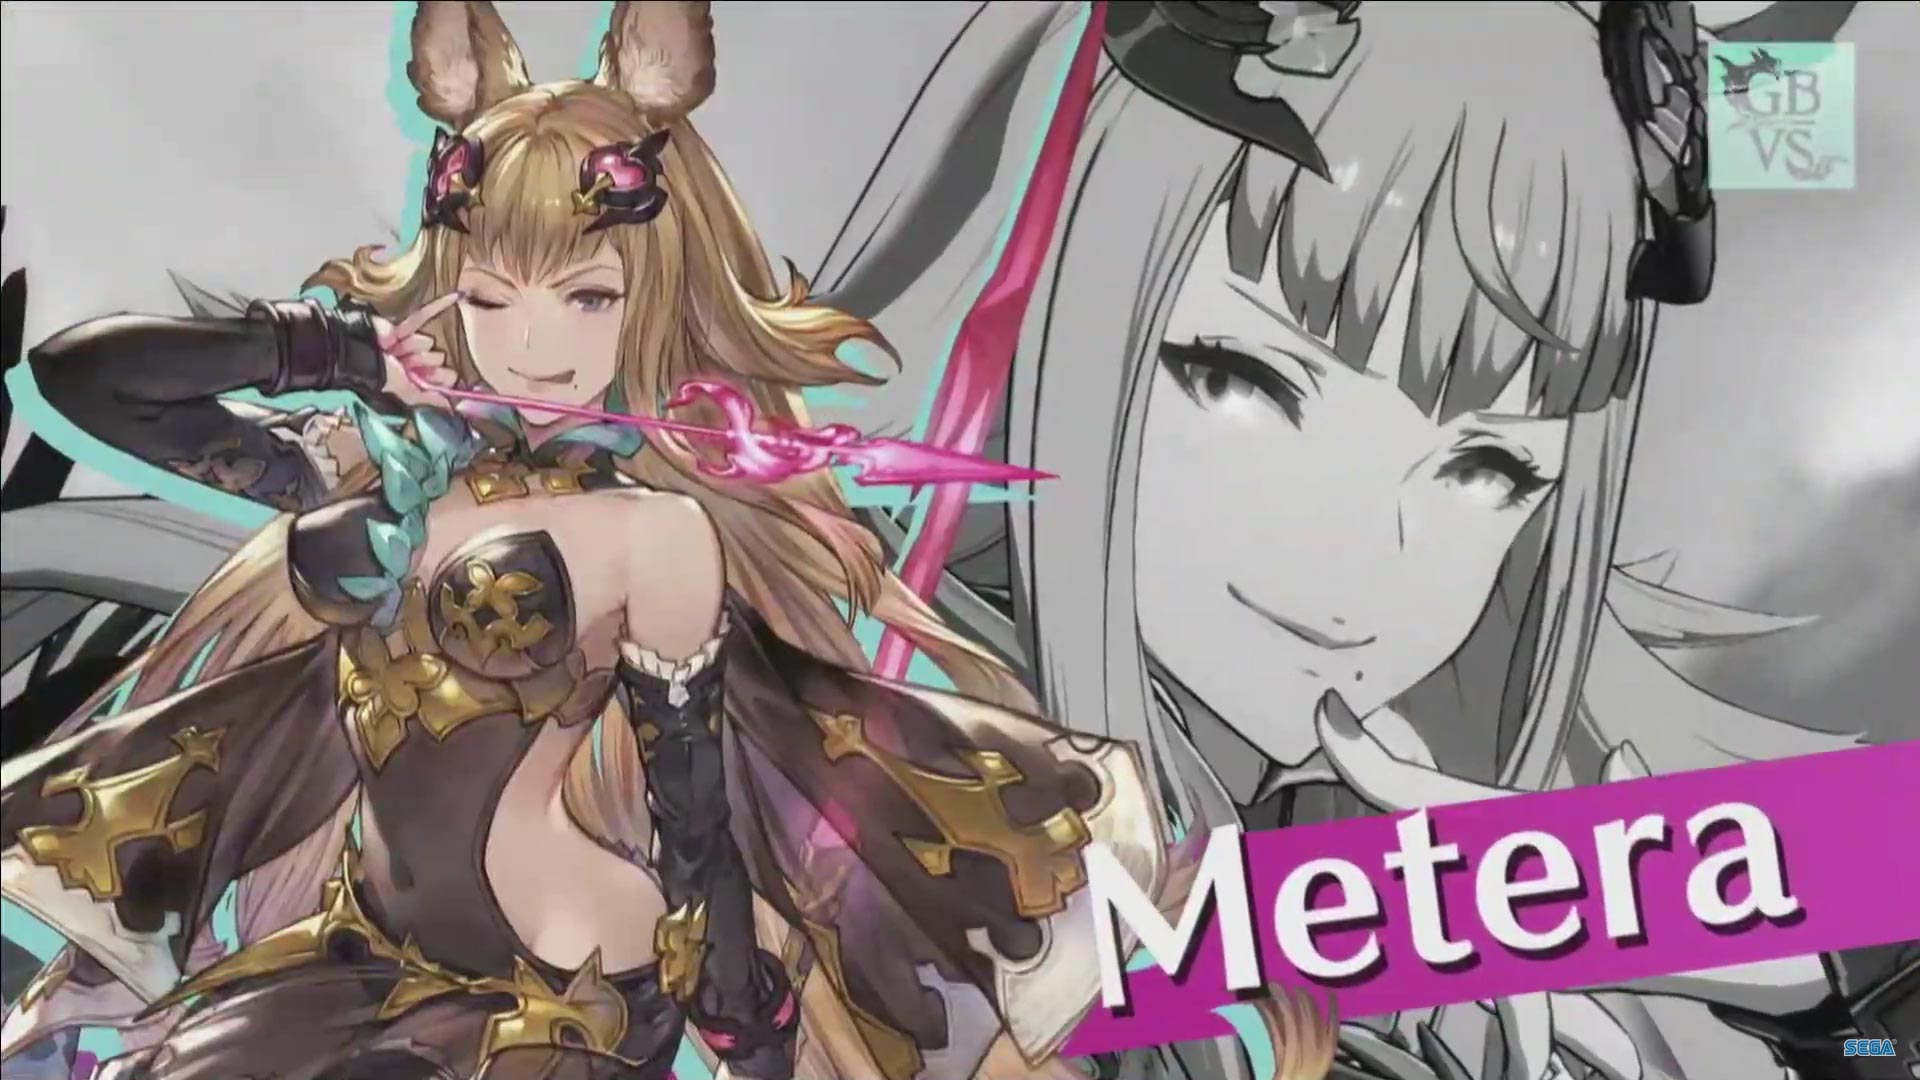 GranBlue Fantasy Versus Metera Reveal Images 3 out of 9 image gallery